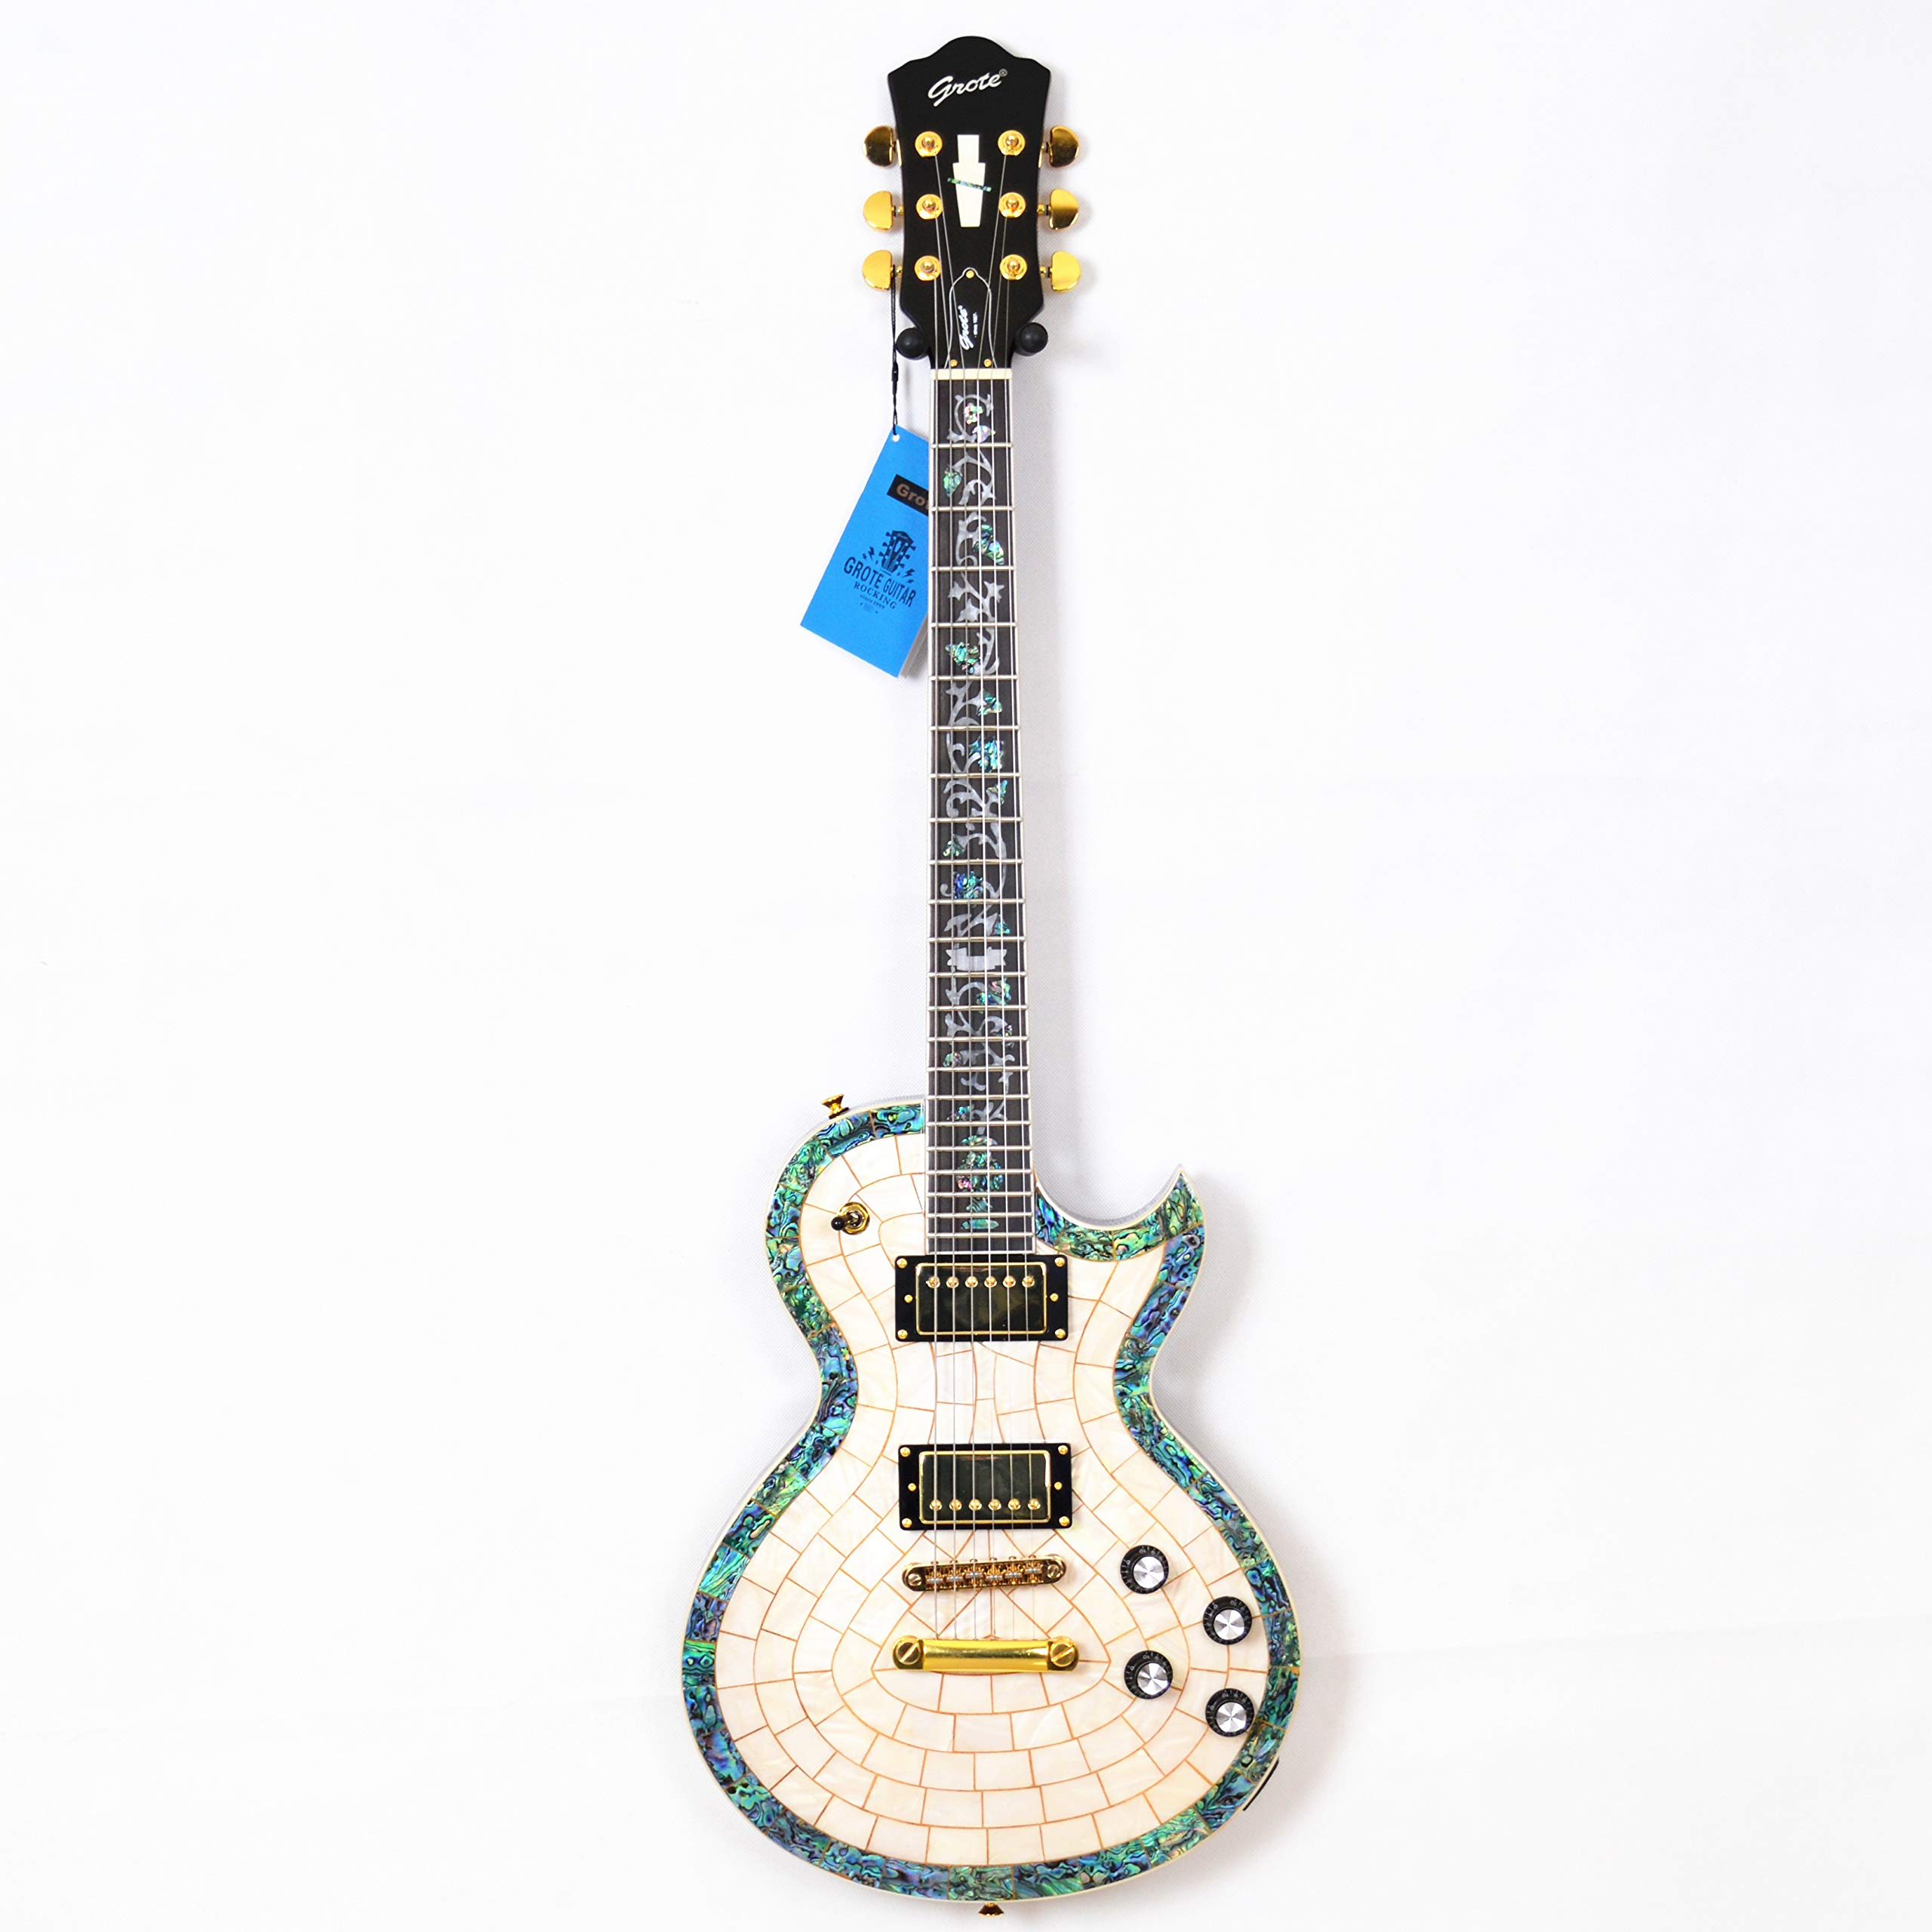 Cheap 2019 New Grote Electric Guitar Abalone Veneer Flower Inlay White Gold Hardware Black Friday & Cyber Monday 2019